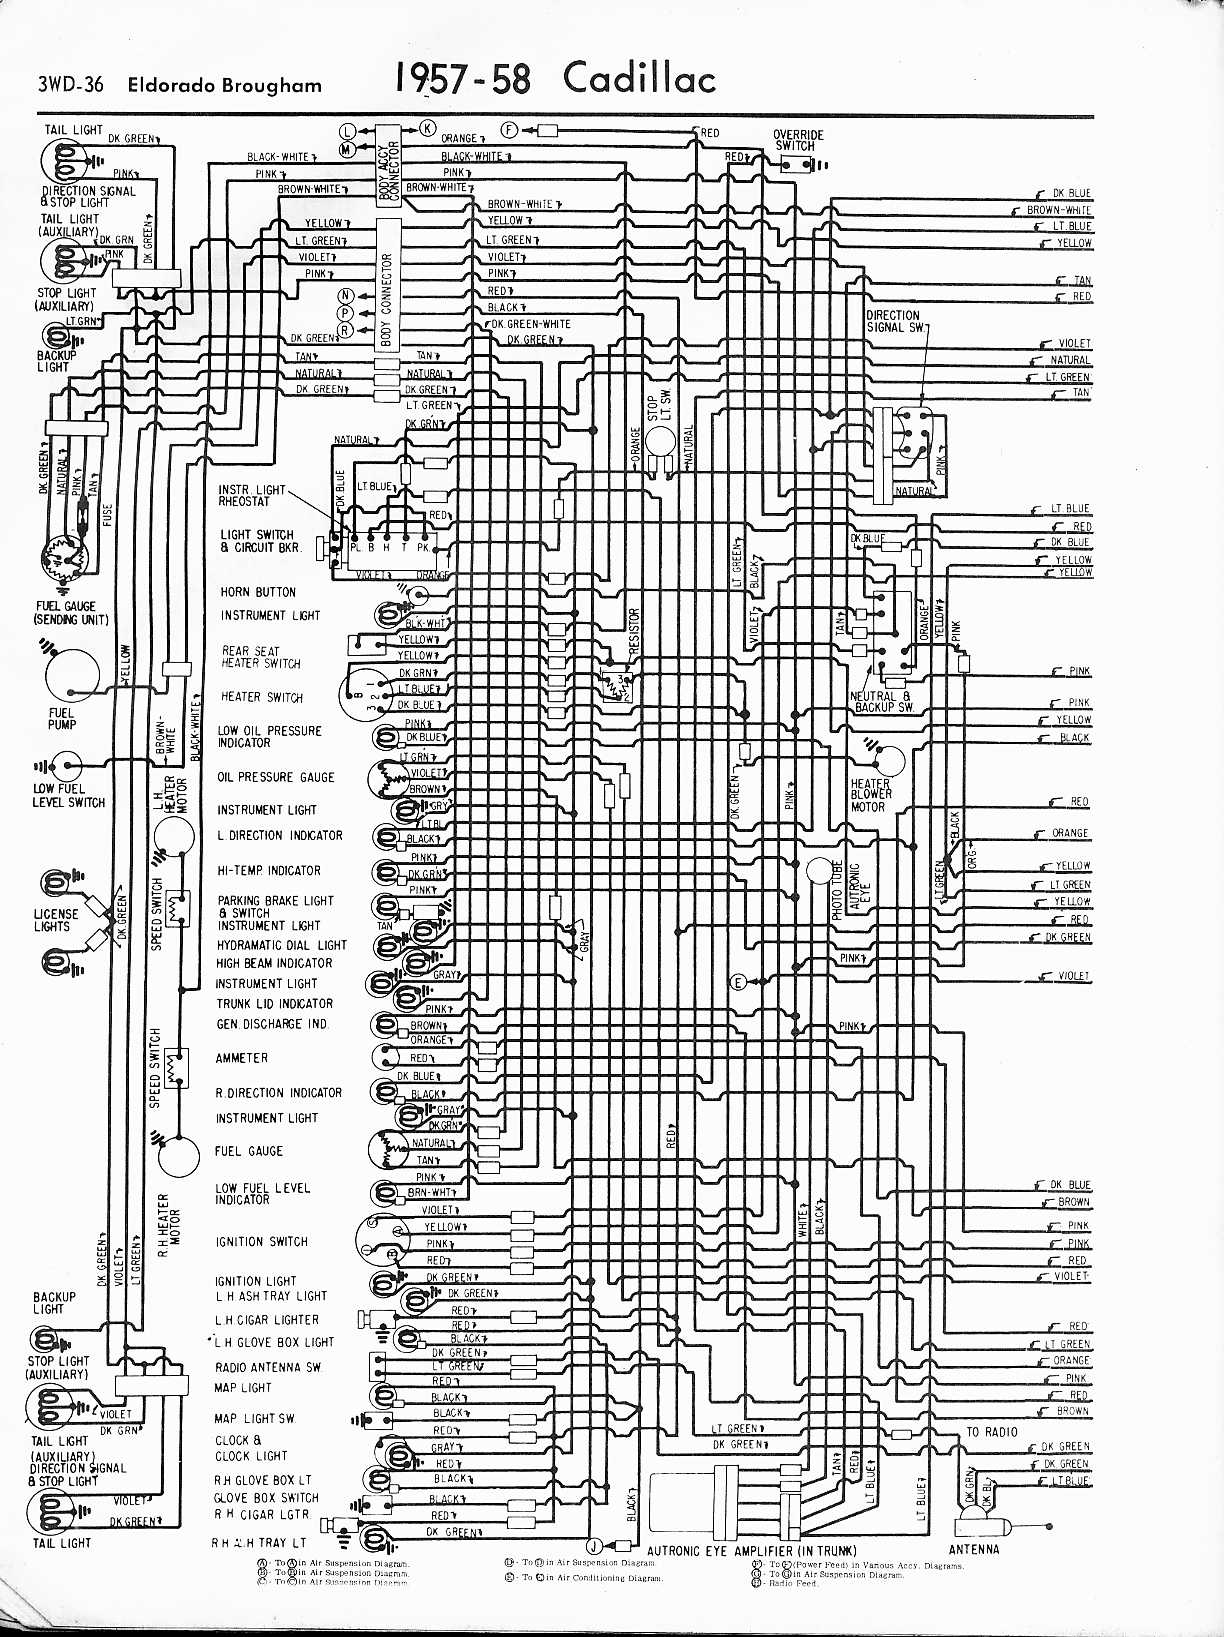 MWireCadi65_3WD 036 cadillac wiring diagrams 1957 1965 2001 cadillac deville wiring diagram at gsmx.co